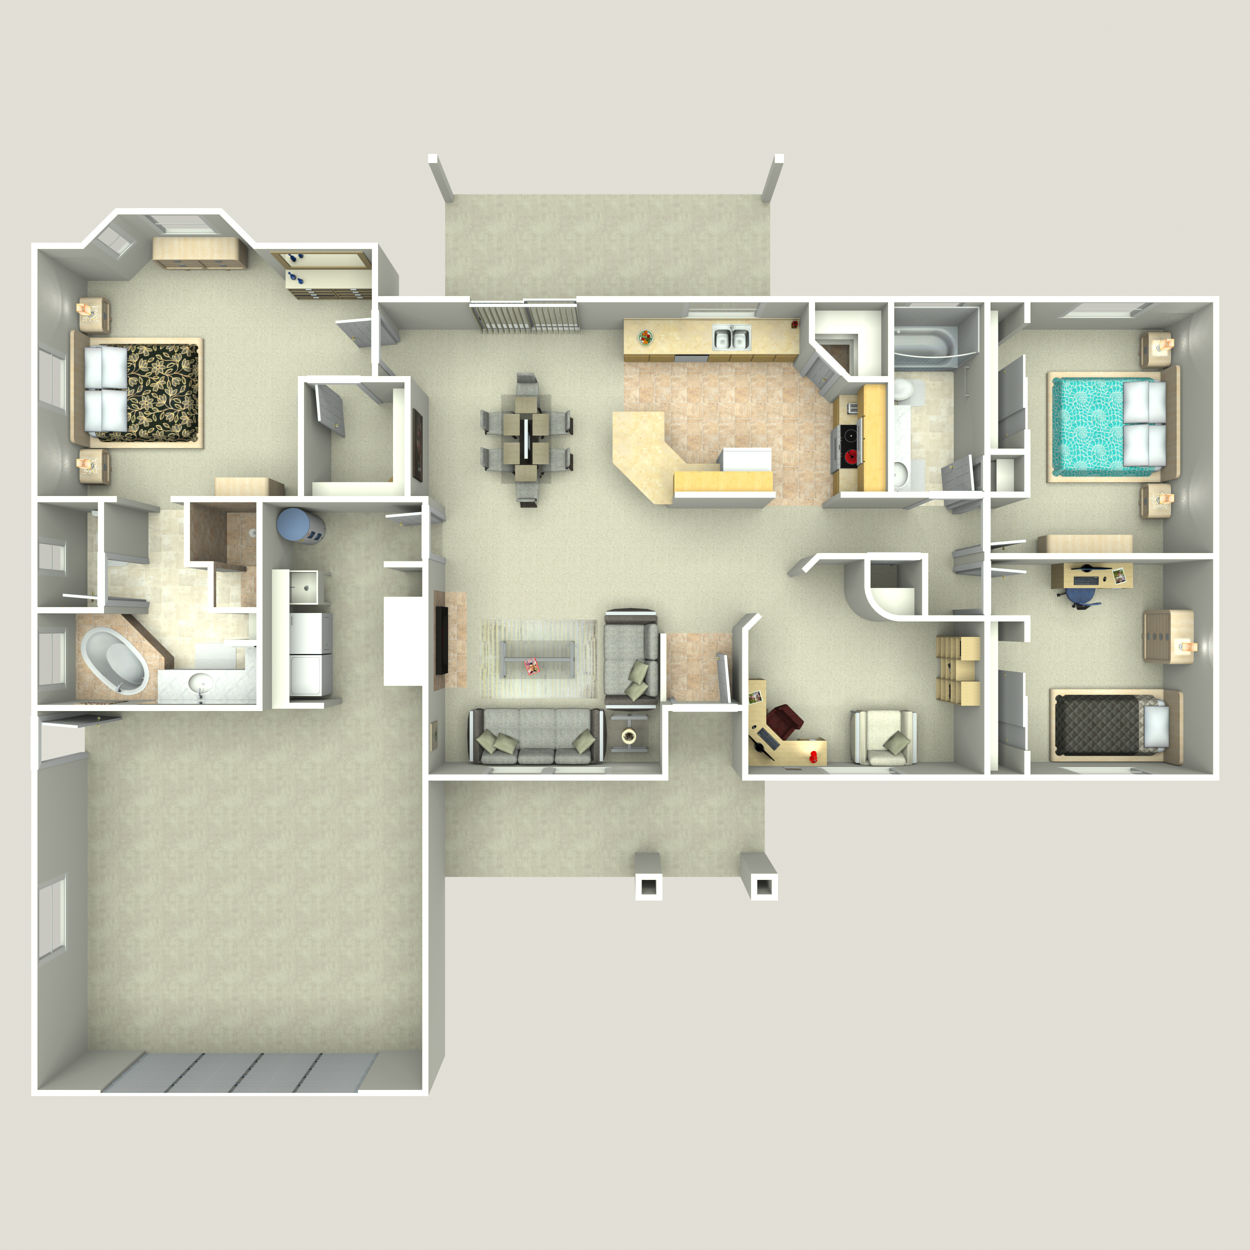 Floor plan image of Heritage III